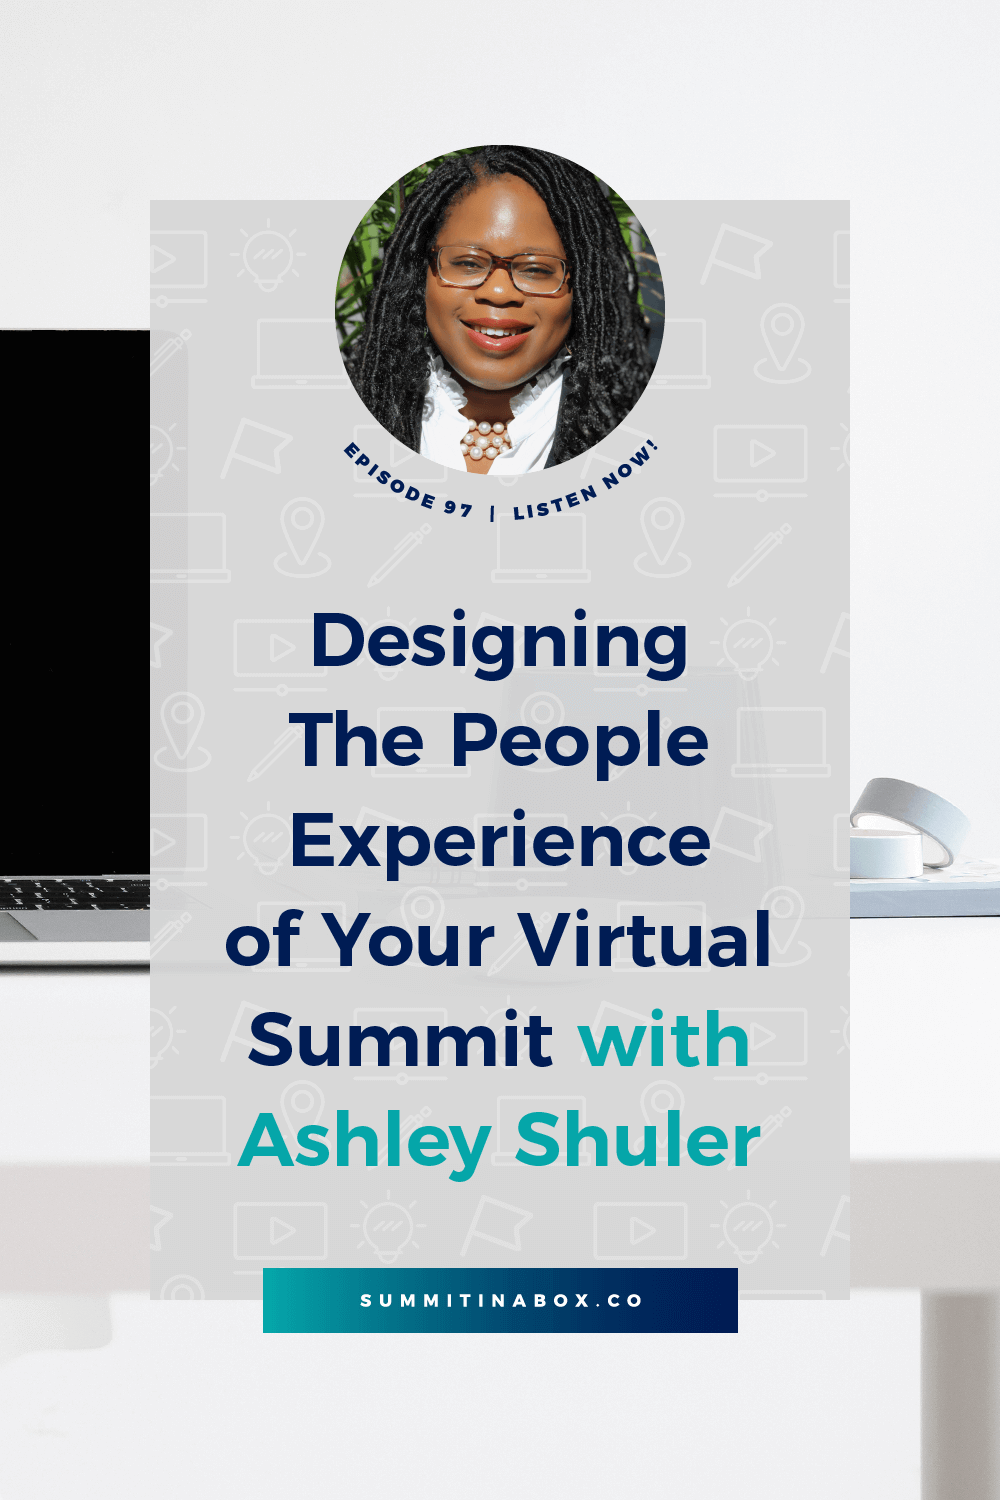 It's natural to spend time planning your overall summit strategy. But what about the people experience before, during, and after the event?